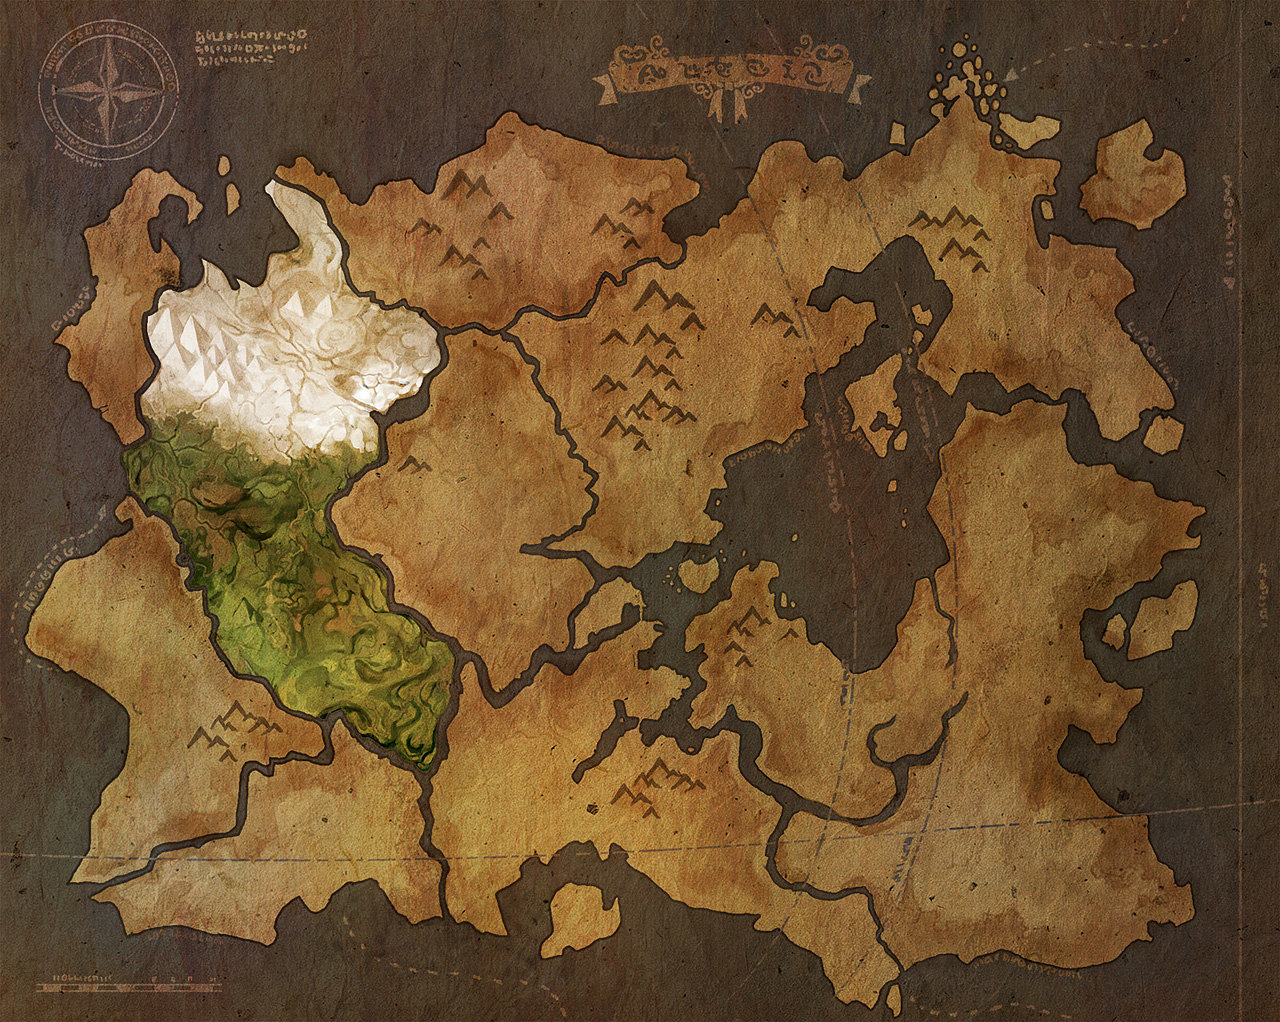 Seung chan lee ui worldmap